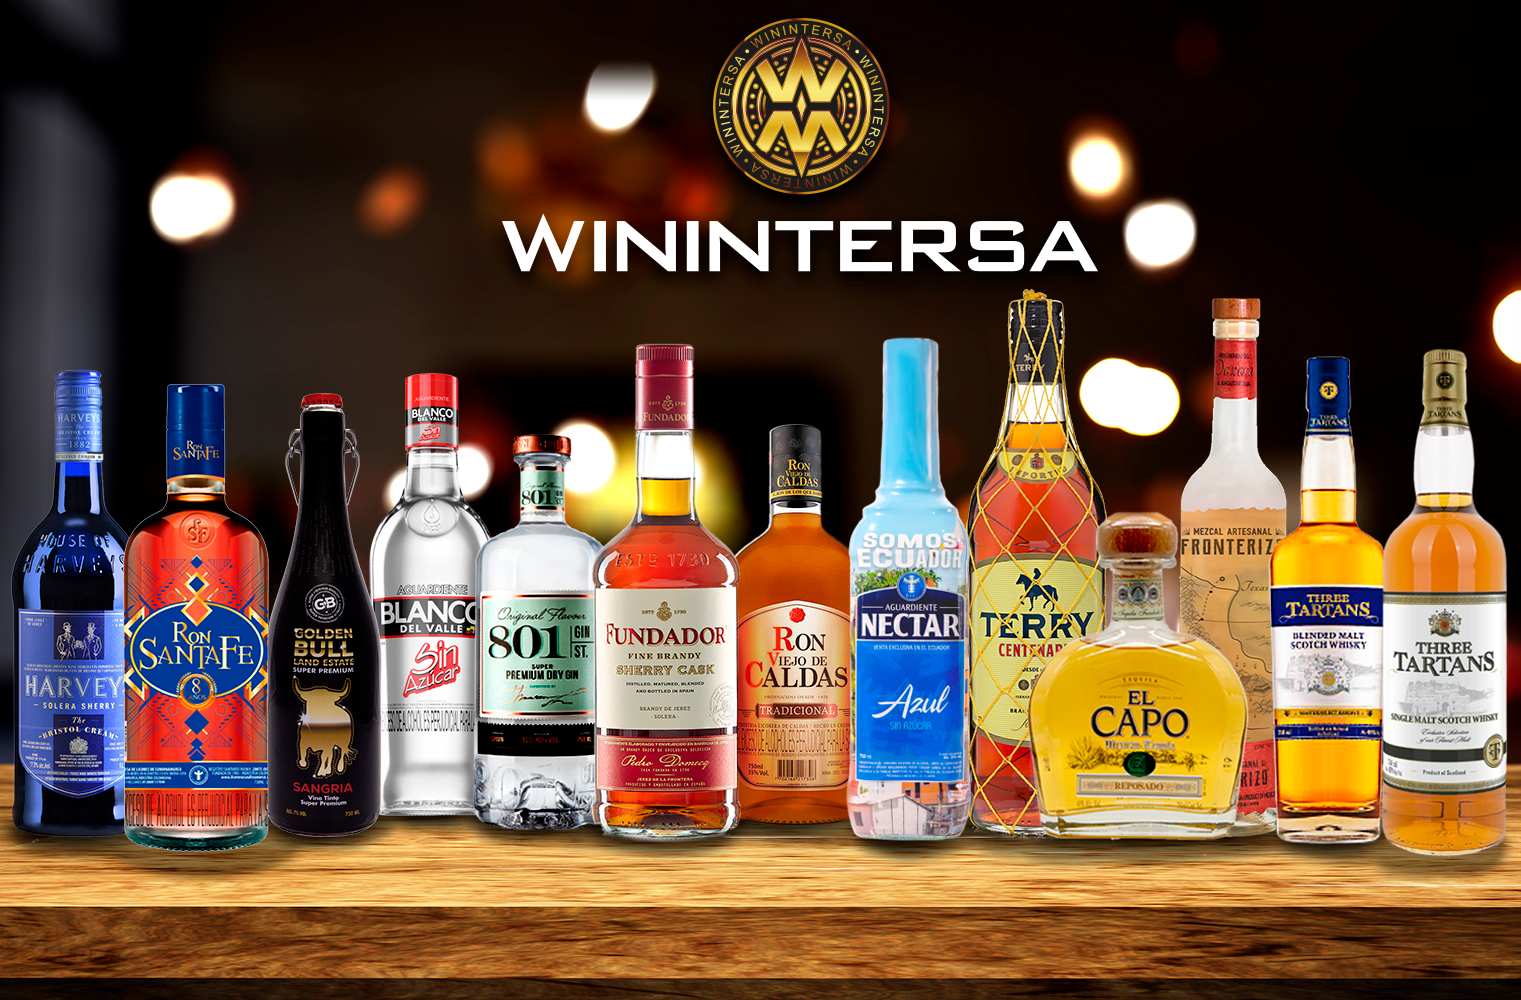 The Best Wines and Spirits